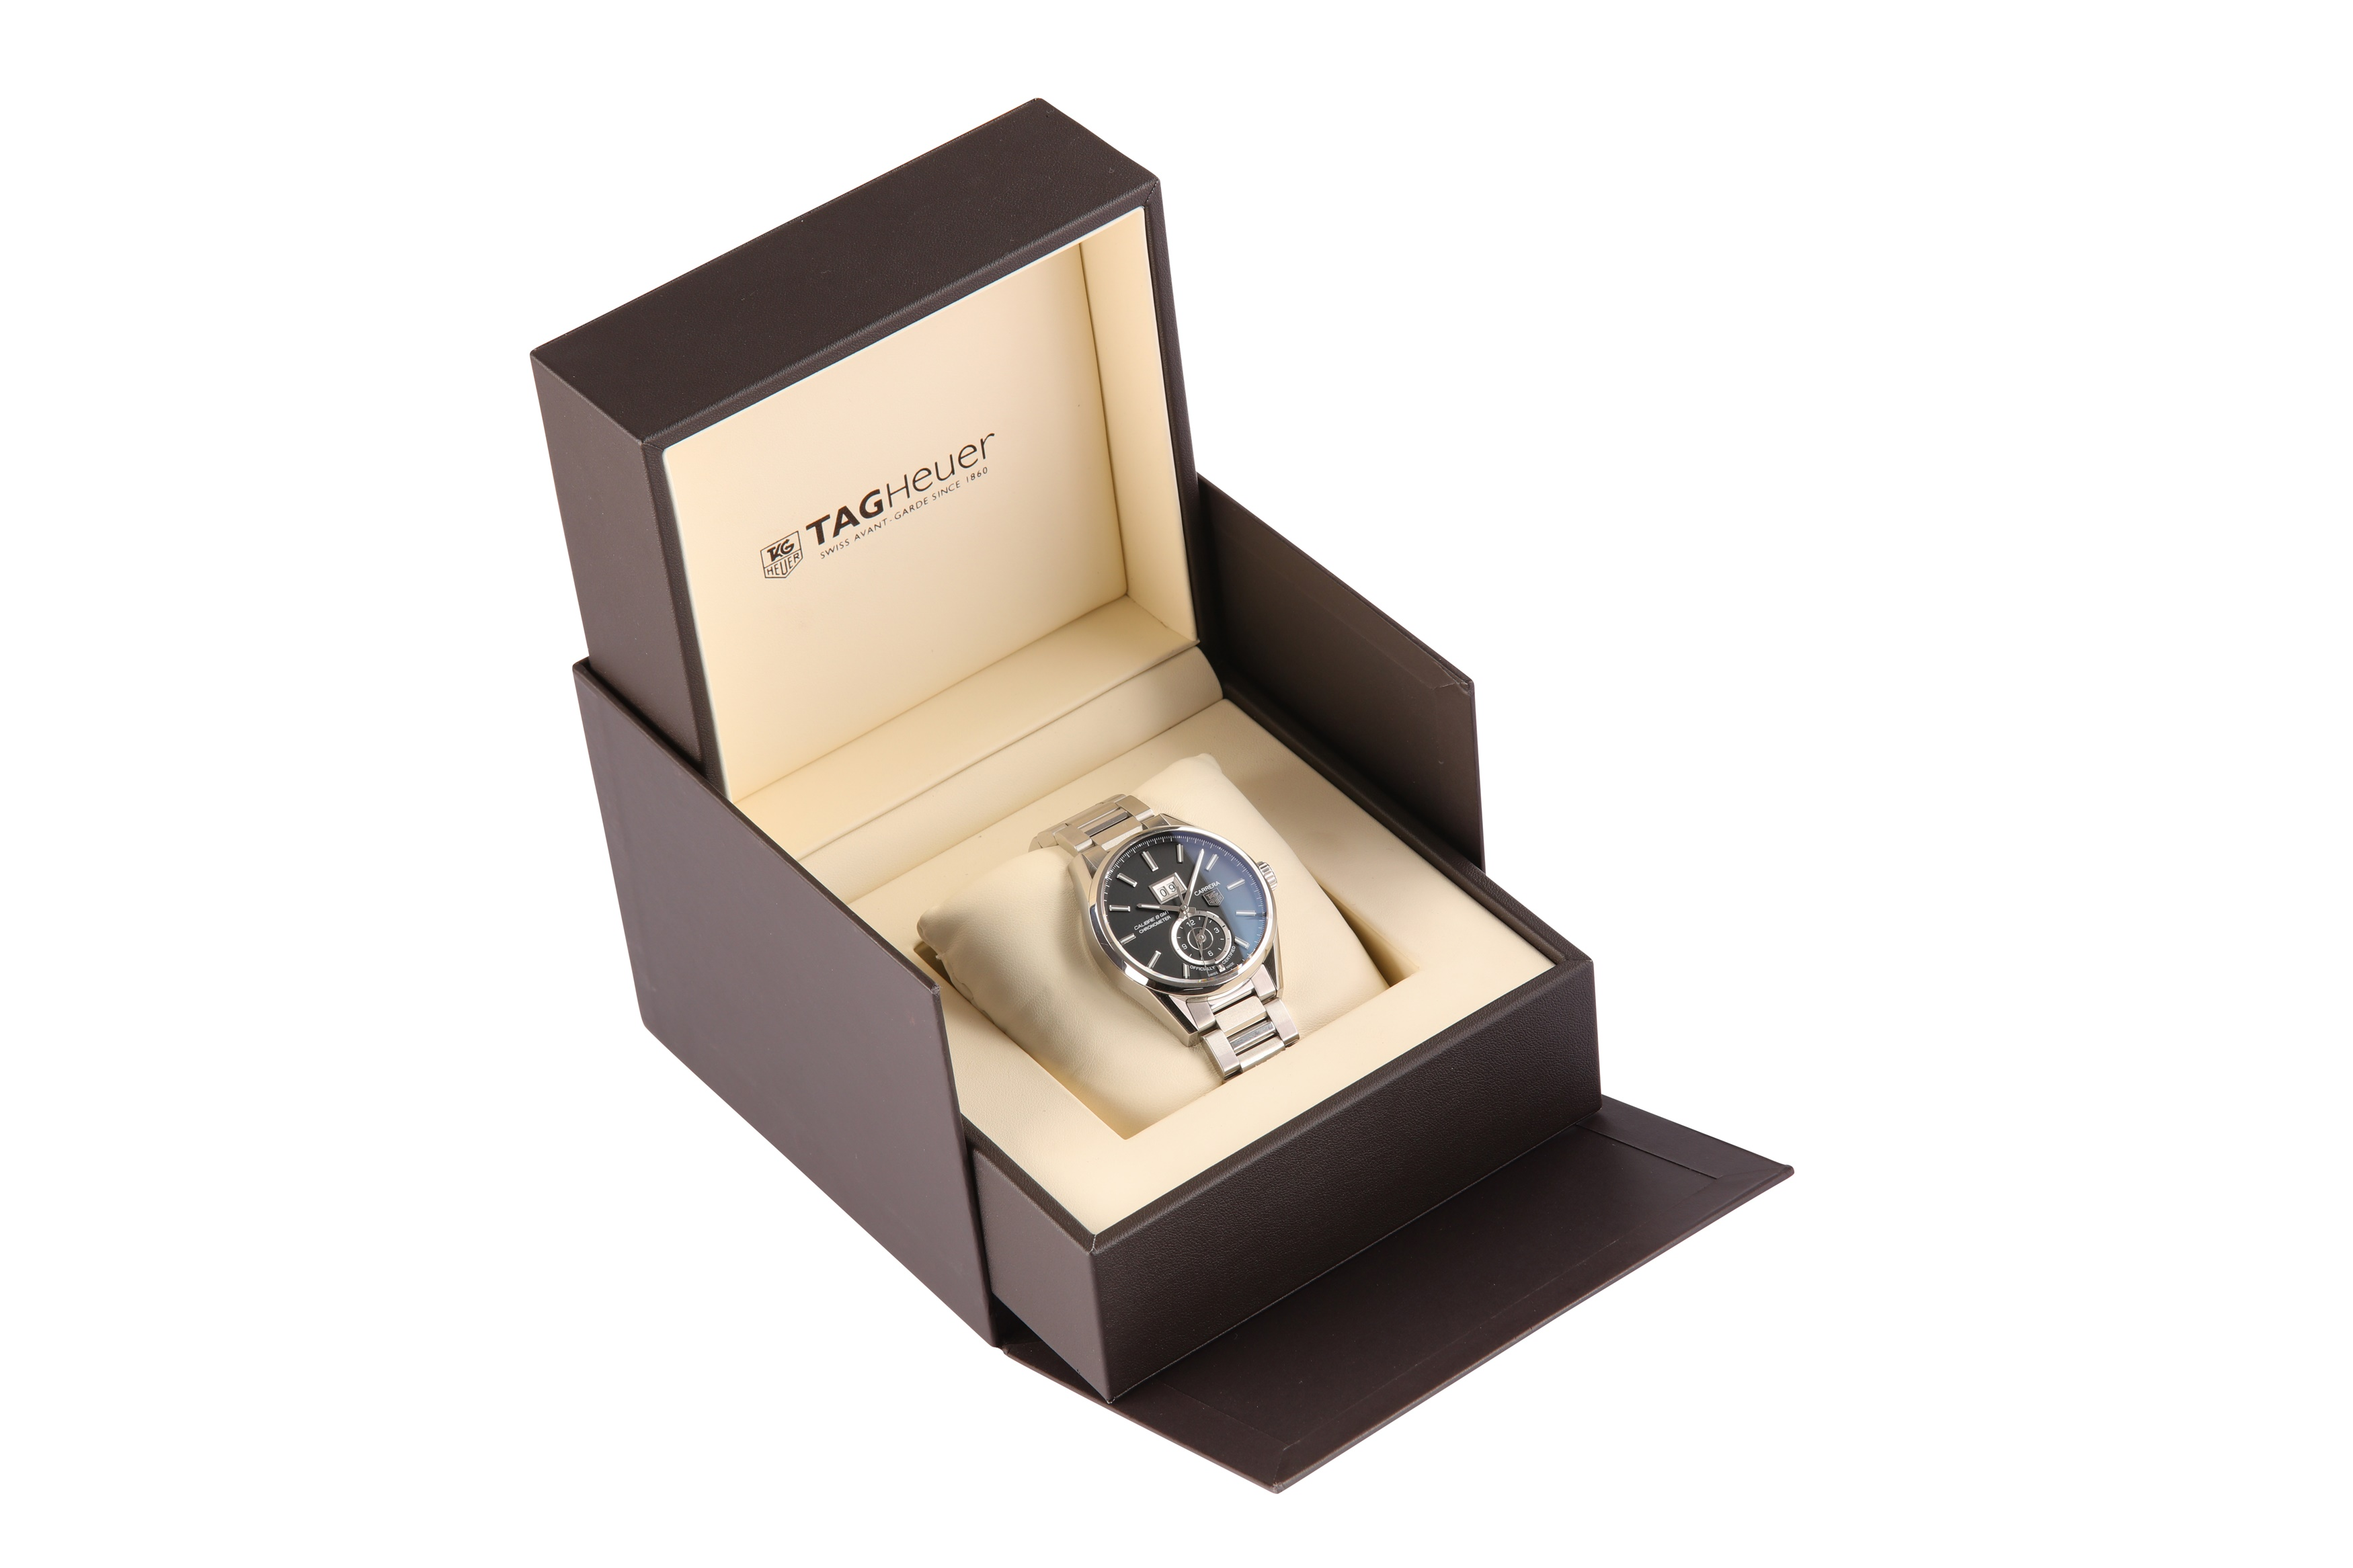 TAG HEUER - Image 2 of 7